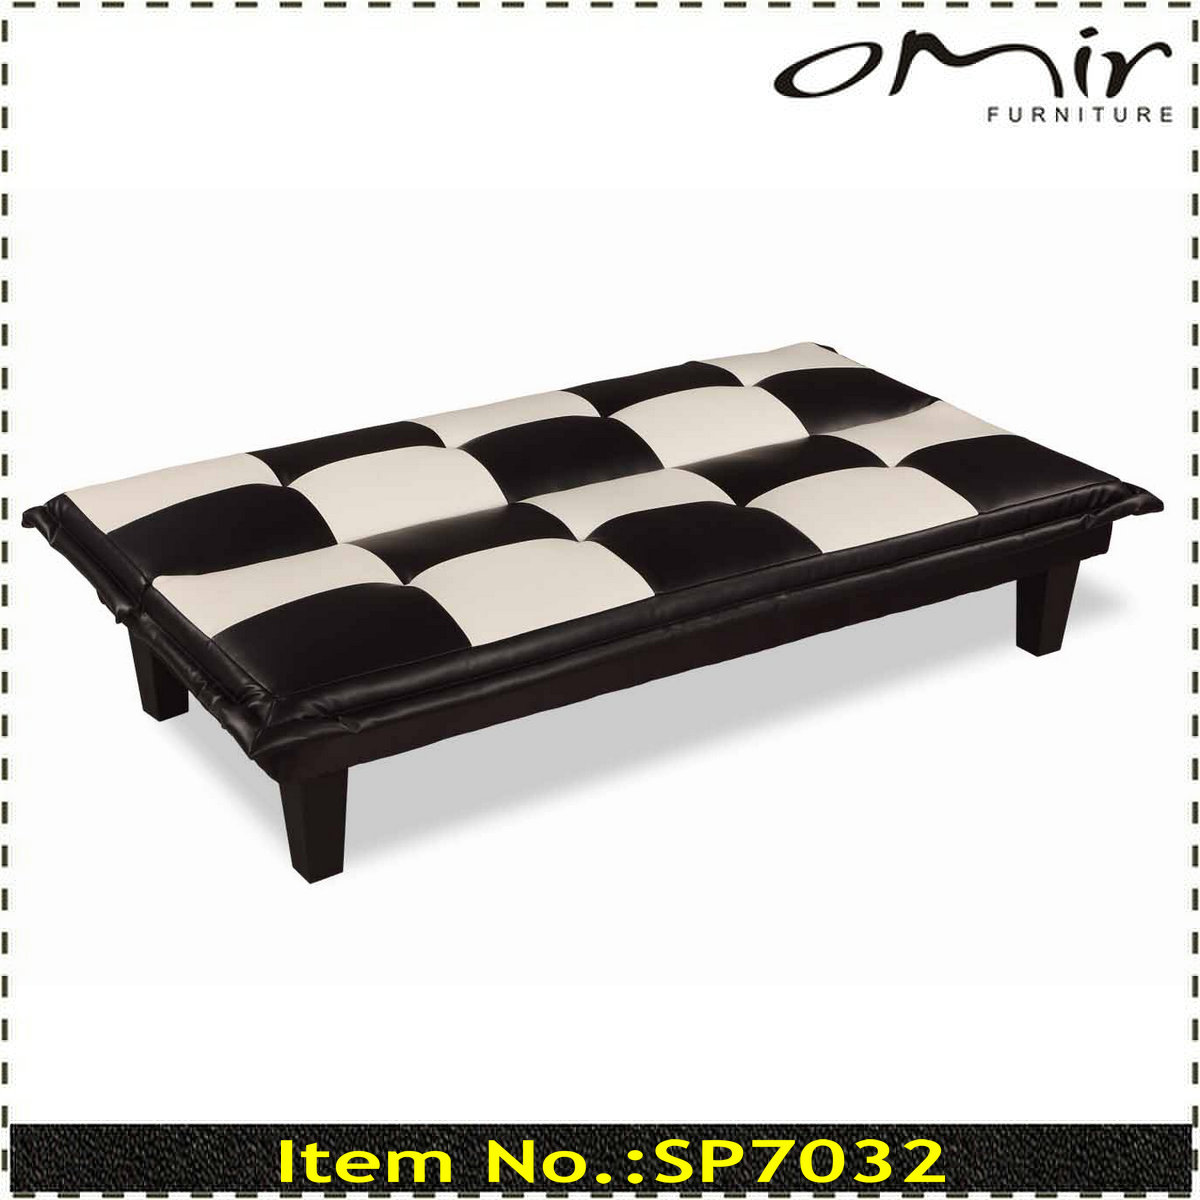 wooden furniture double bed furniture cebu bed SP7032